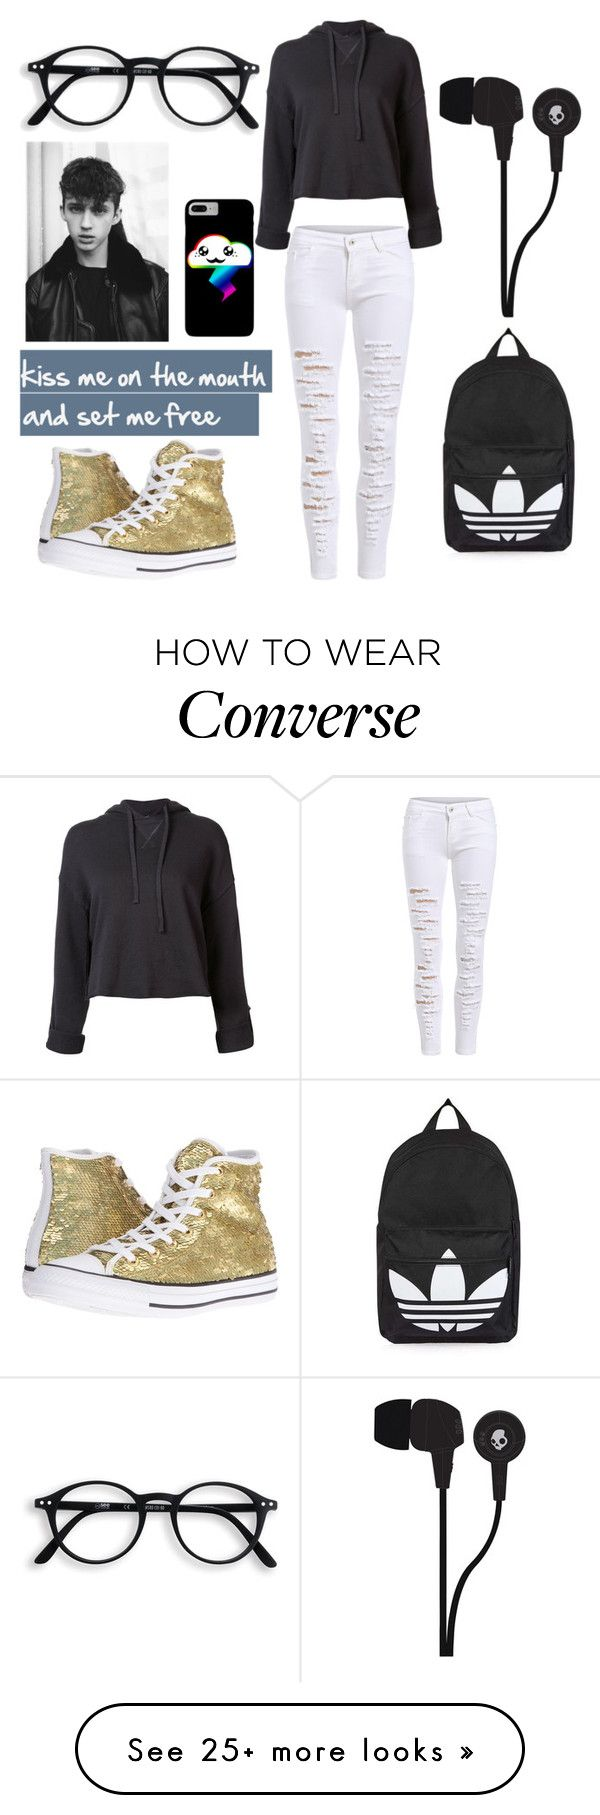 """nope"" by xx-secret-xx on Polyvore featuring Topshop, R13, Converse and Skullcandy"